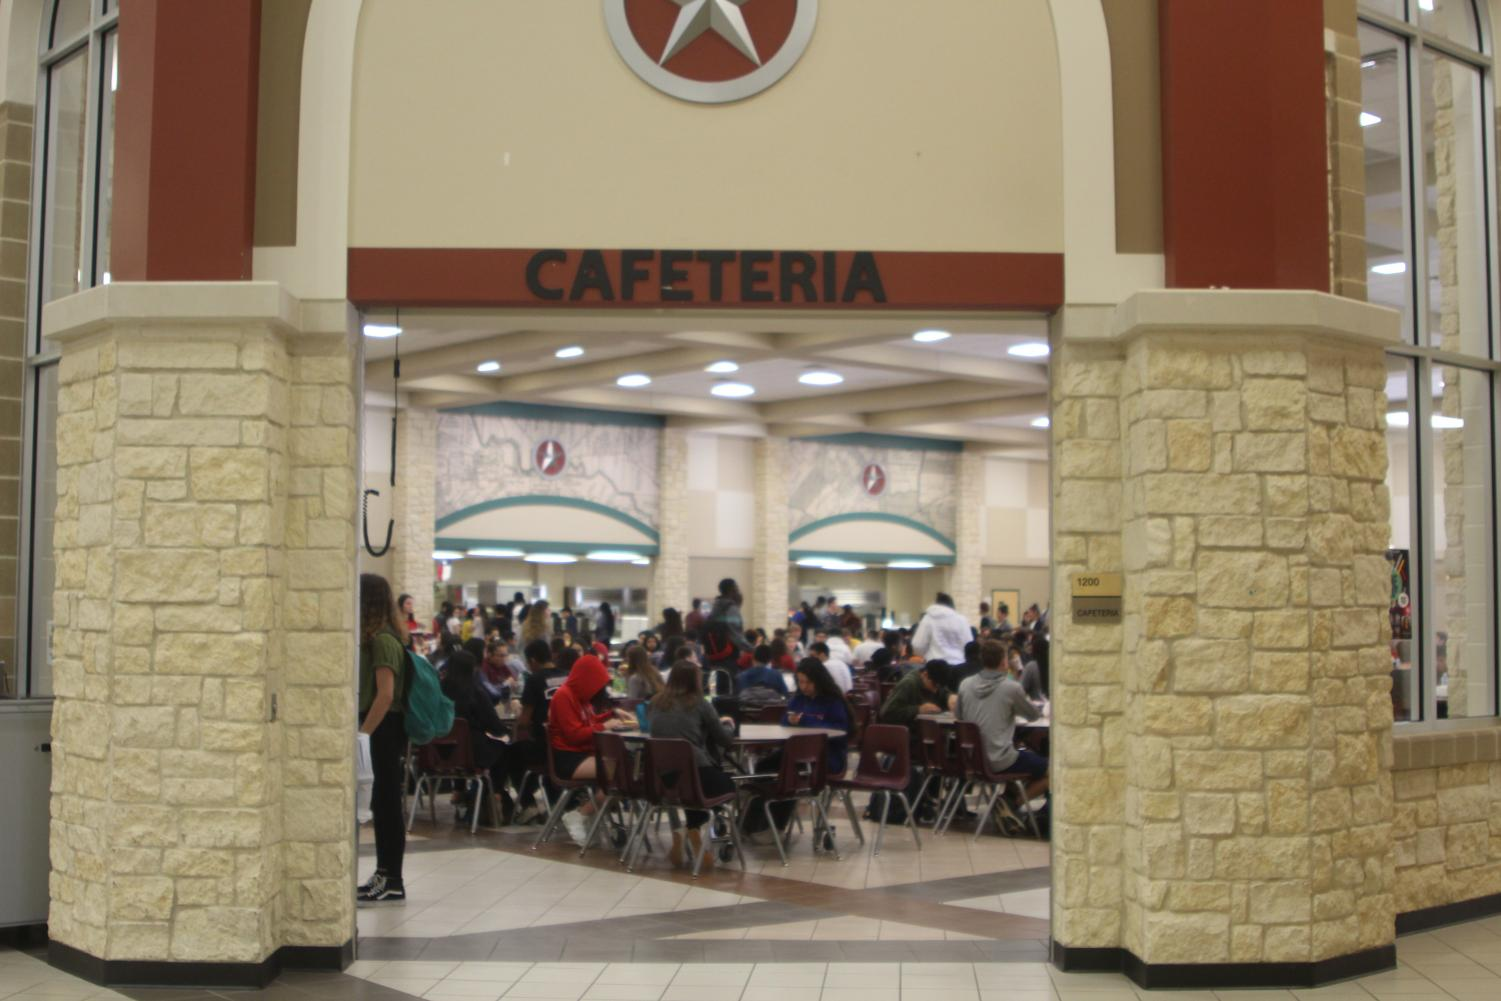 C lunch in the cafeteria